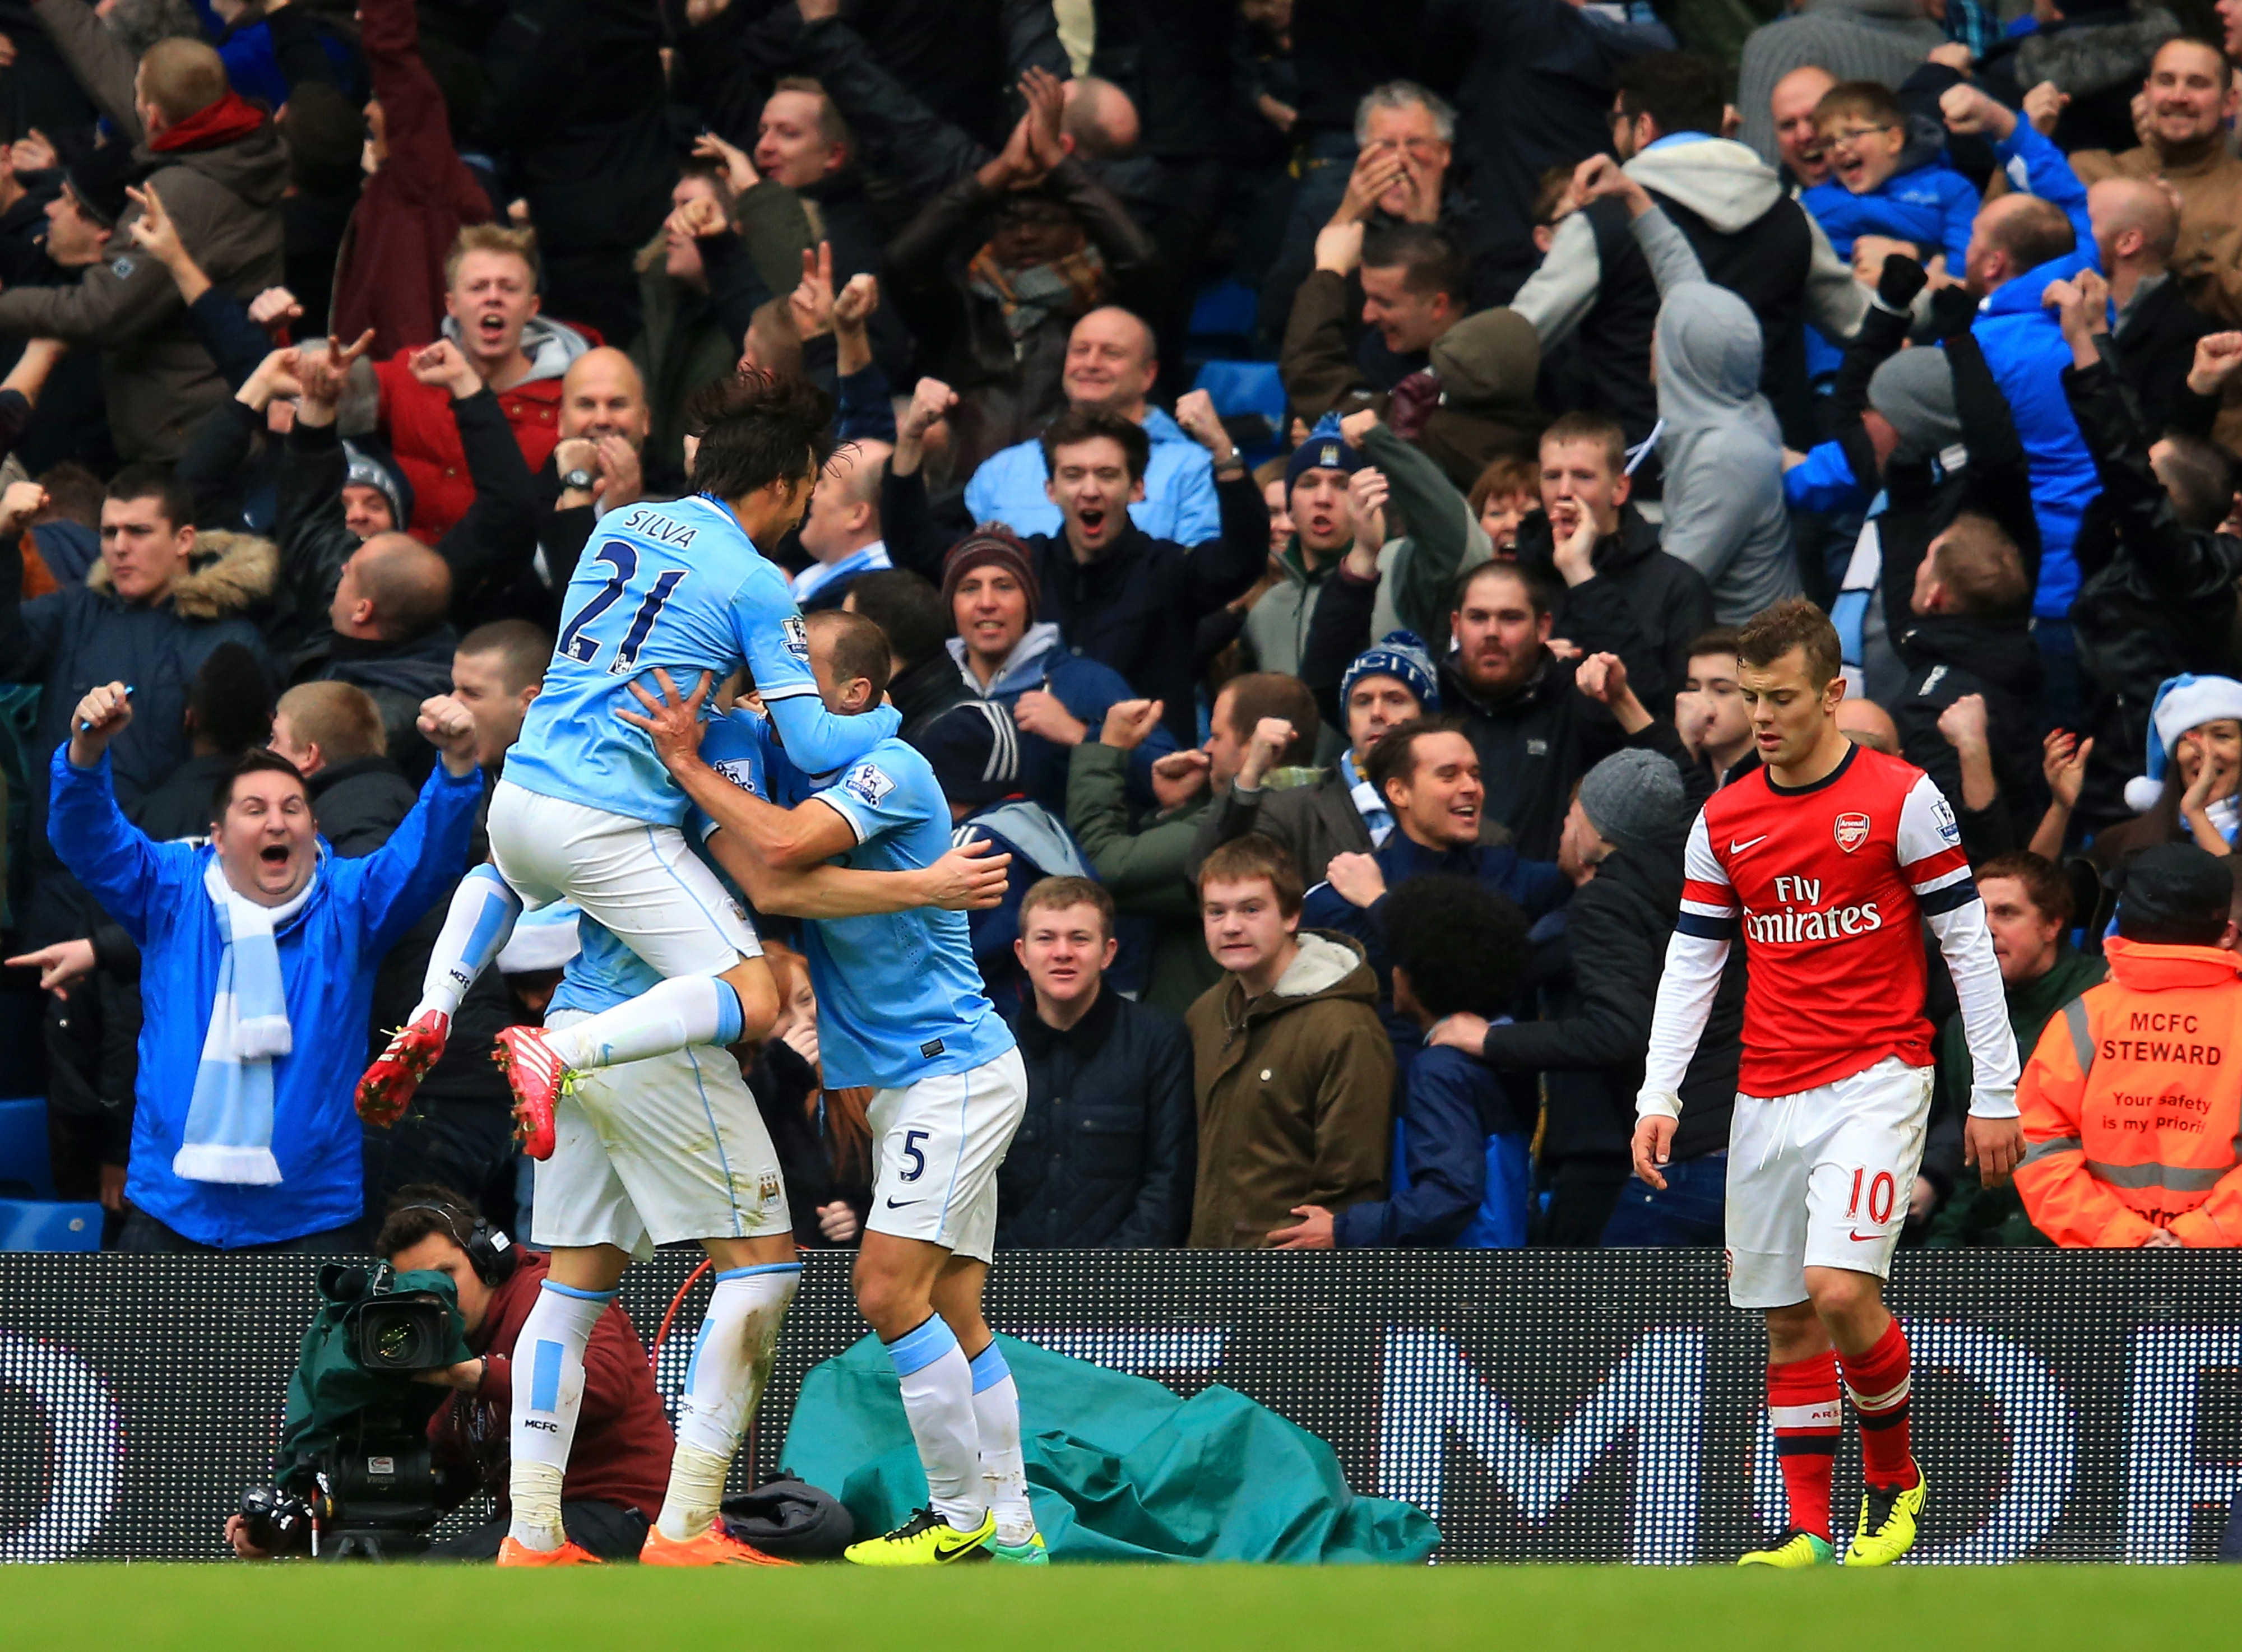 Manchester City vs. Arsenal: Final score 6-3; City cruise past the leaders